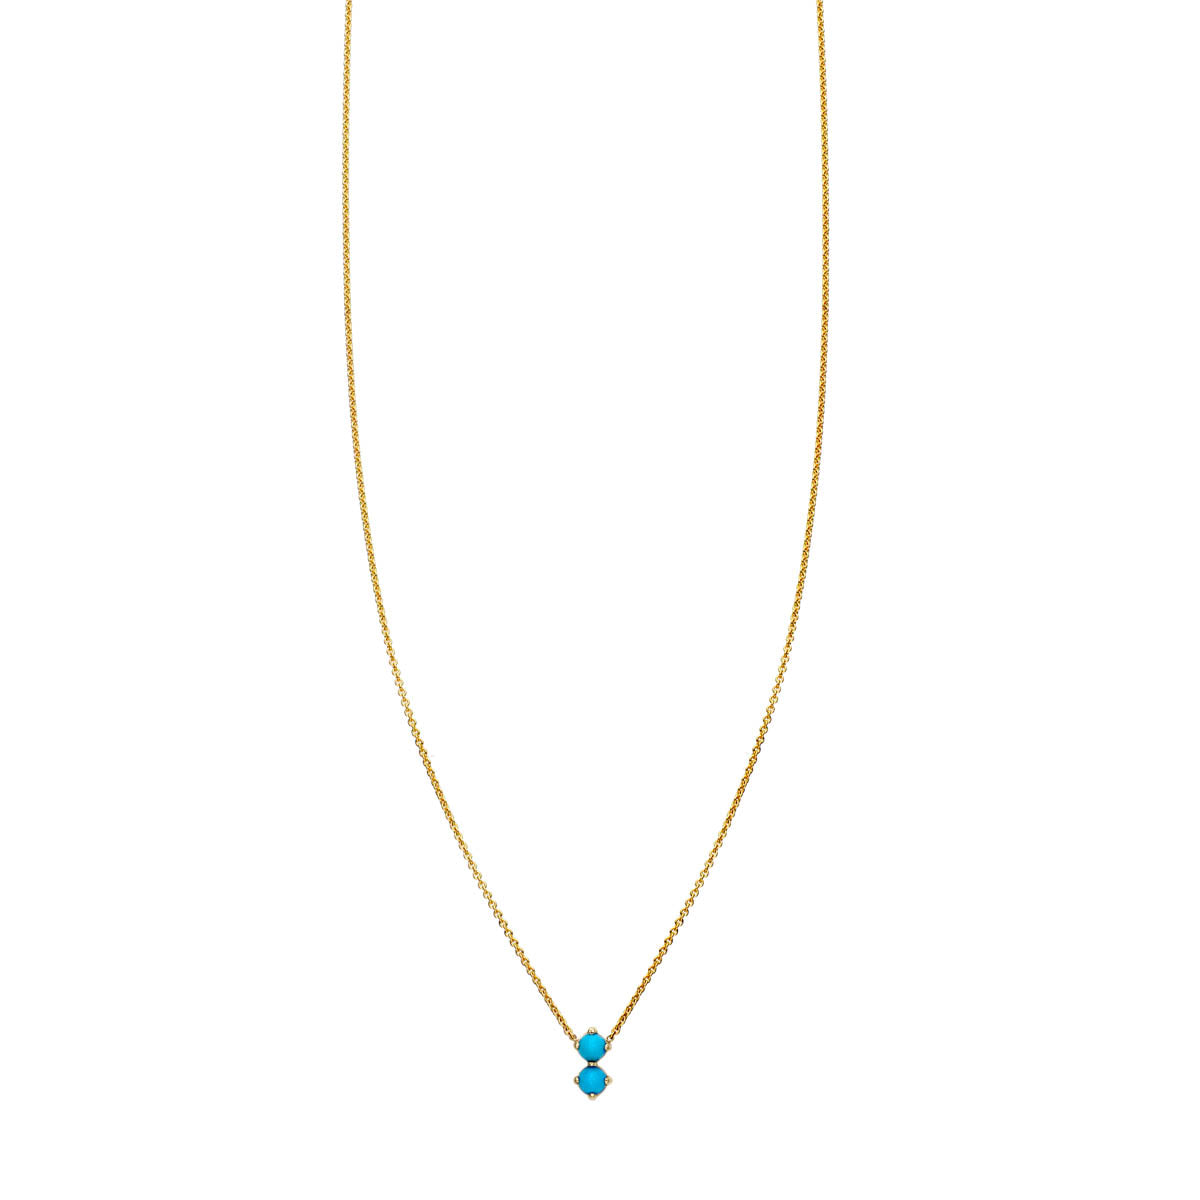 Image of Double Bubble Turquoise Necklace